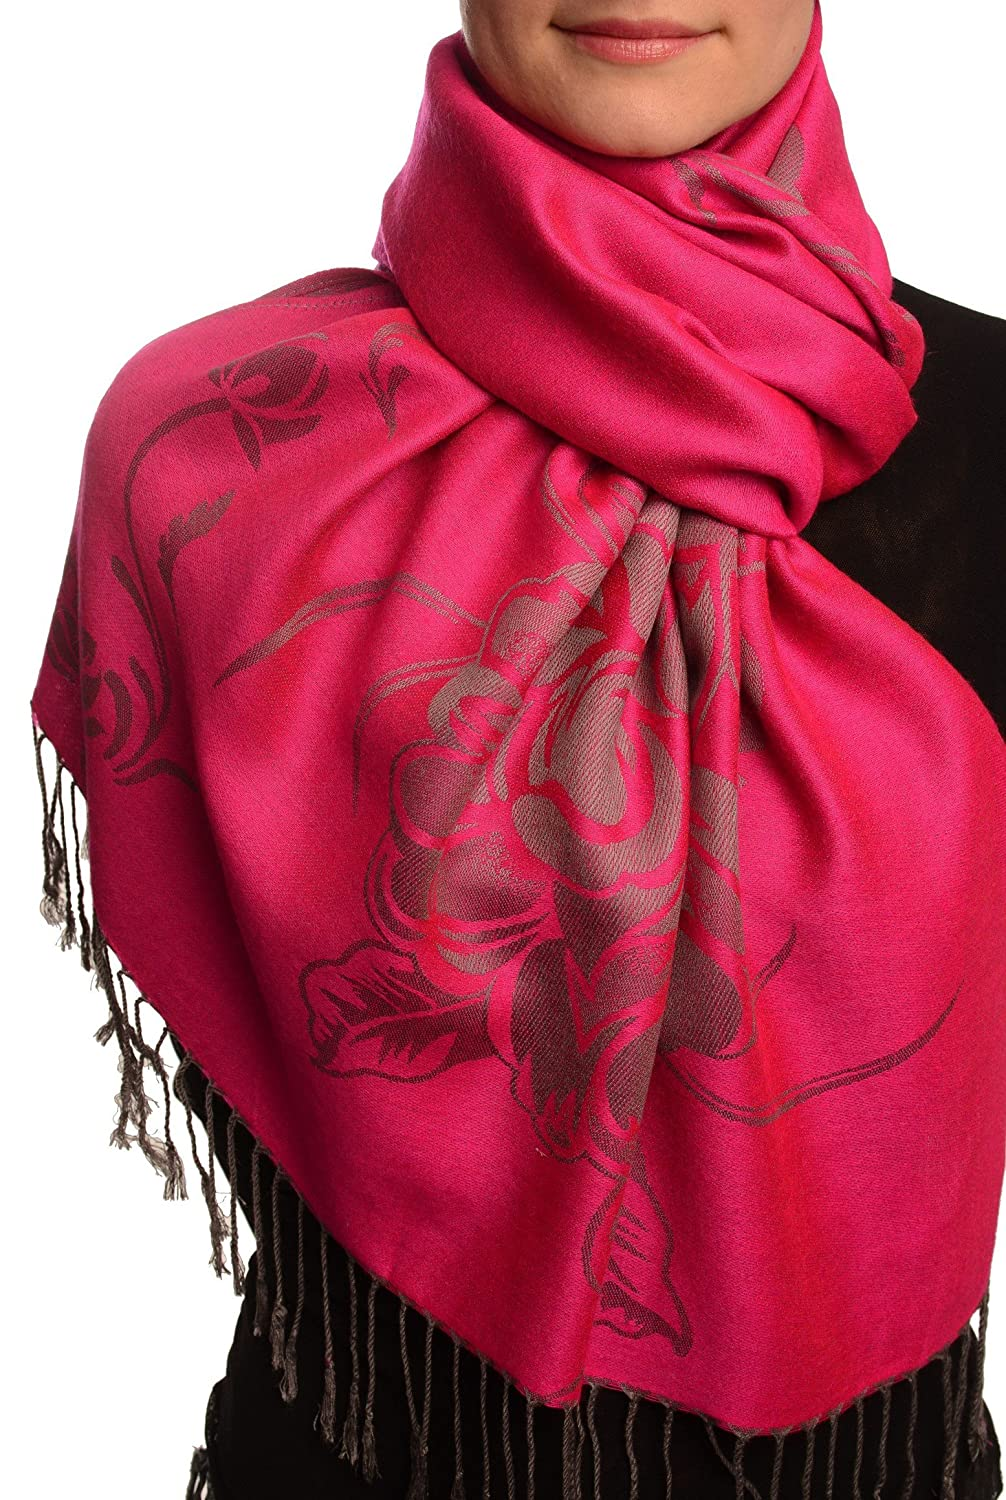 Large Roses On Fuchsia Pink Pashmina Feel With Tassels - Scarf